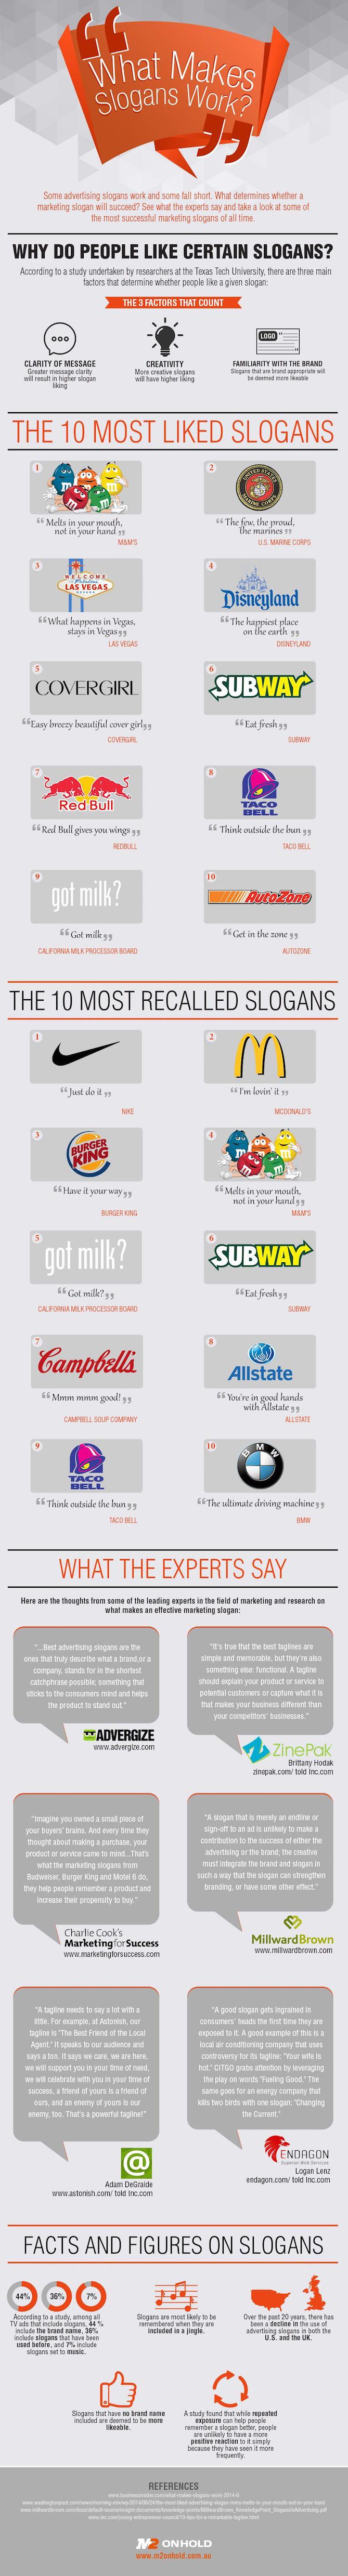 What Makes a Slogan Successful? [Infographic]